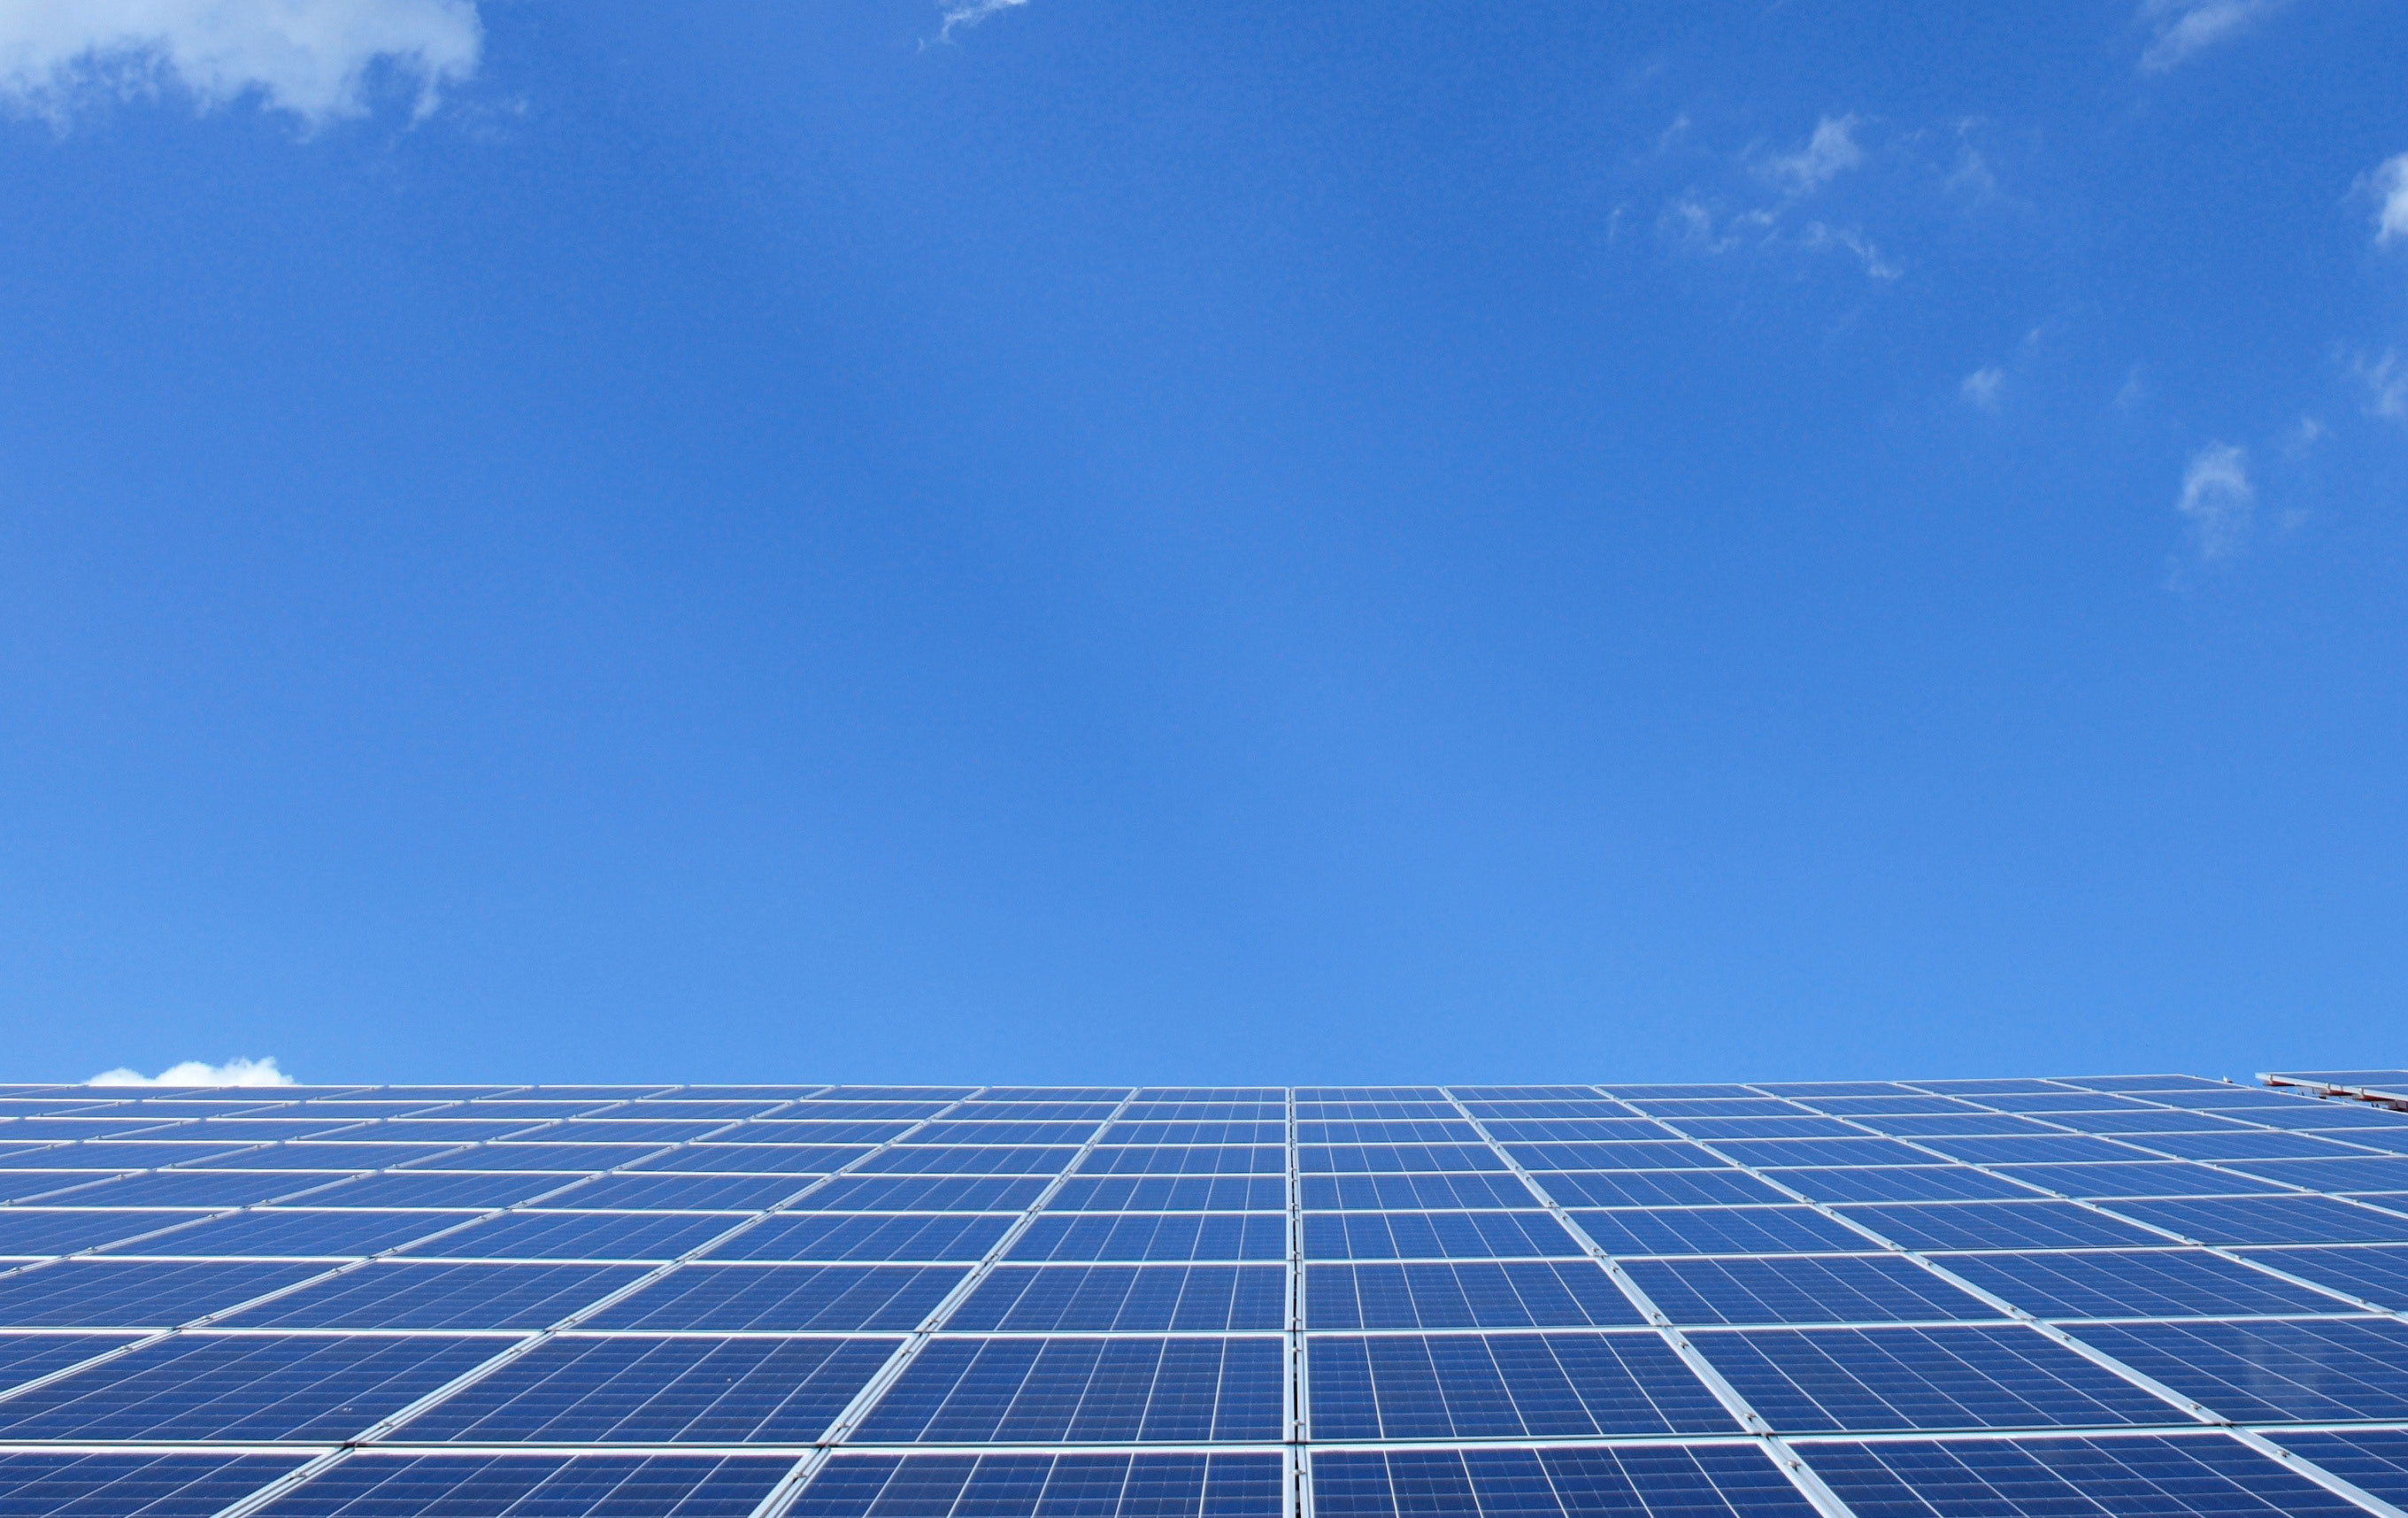 A blue sky and solar panels